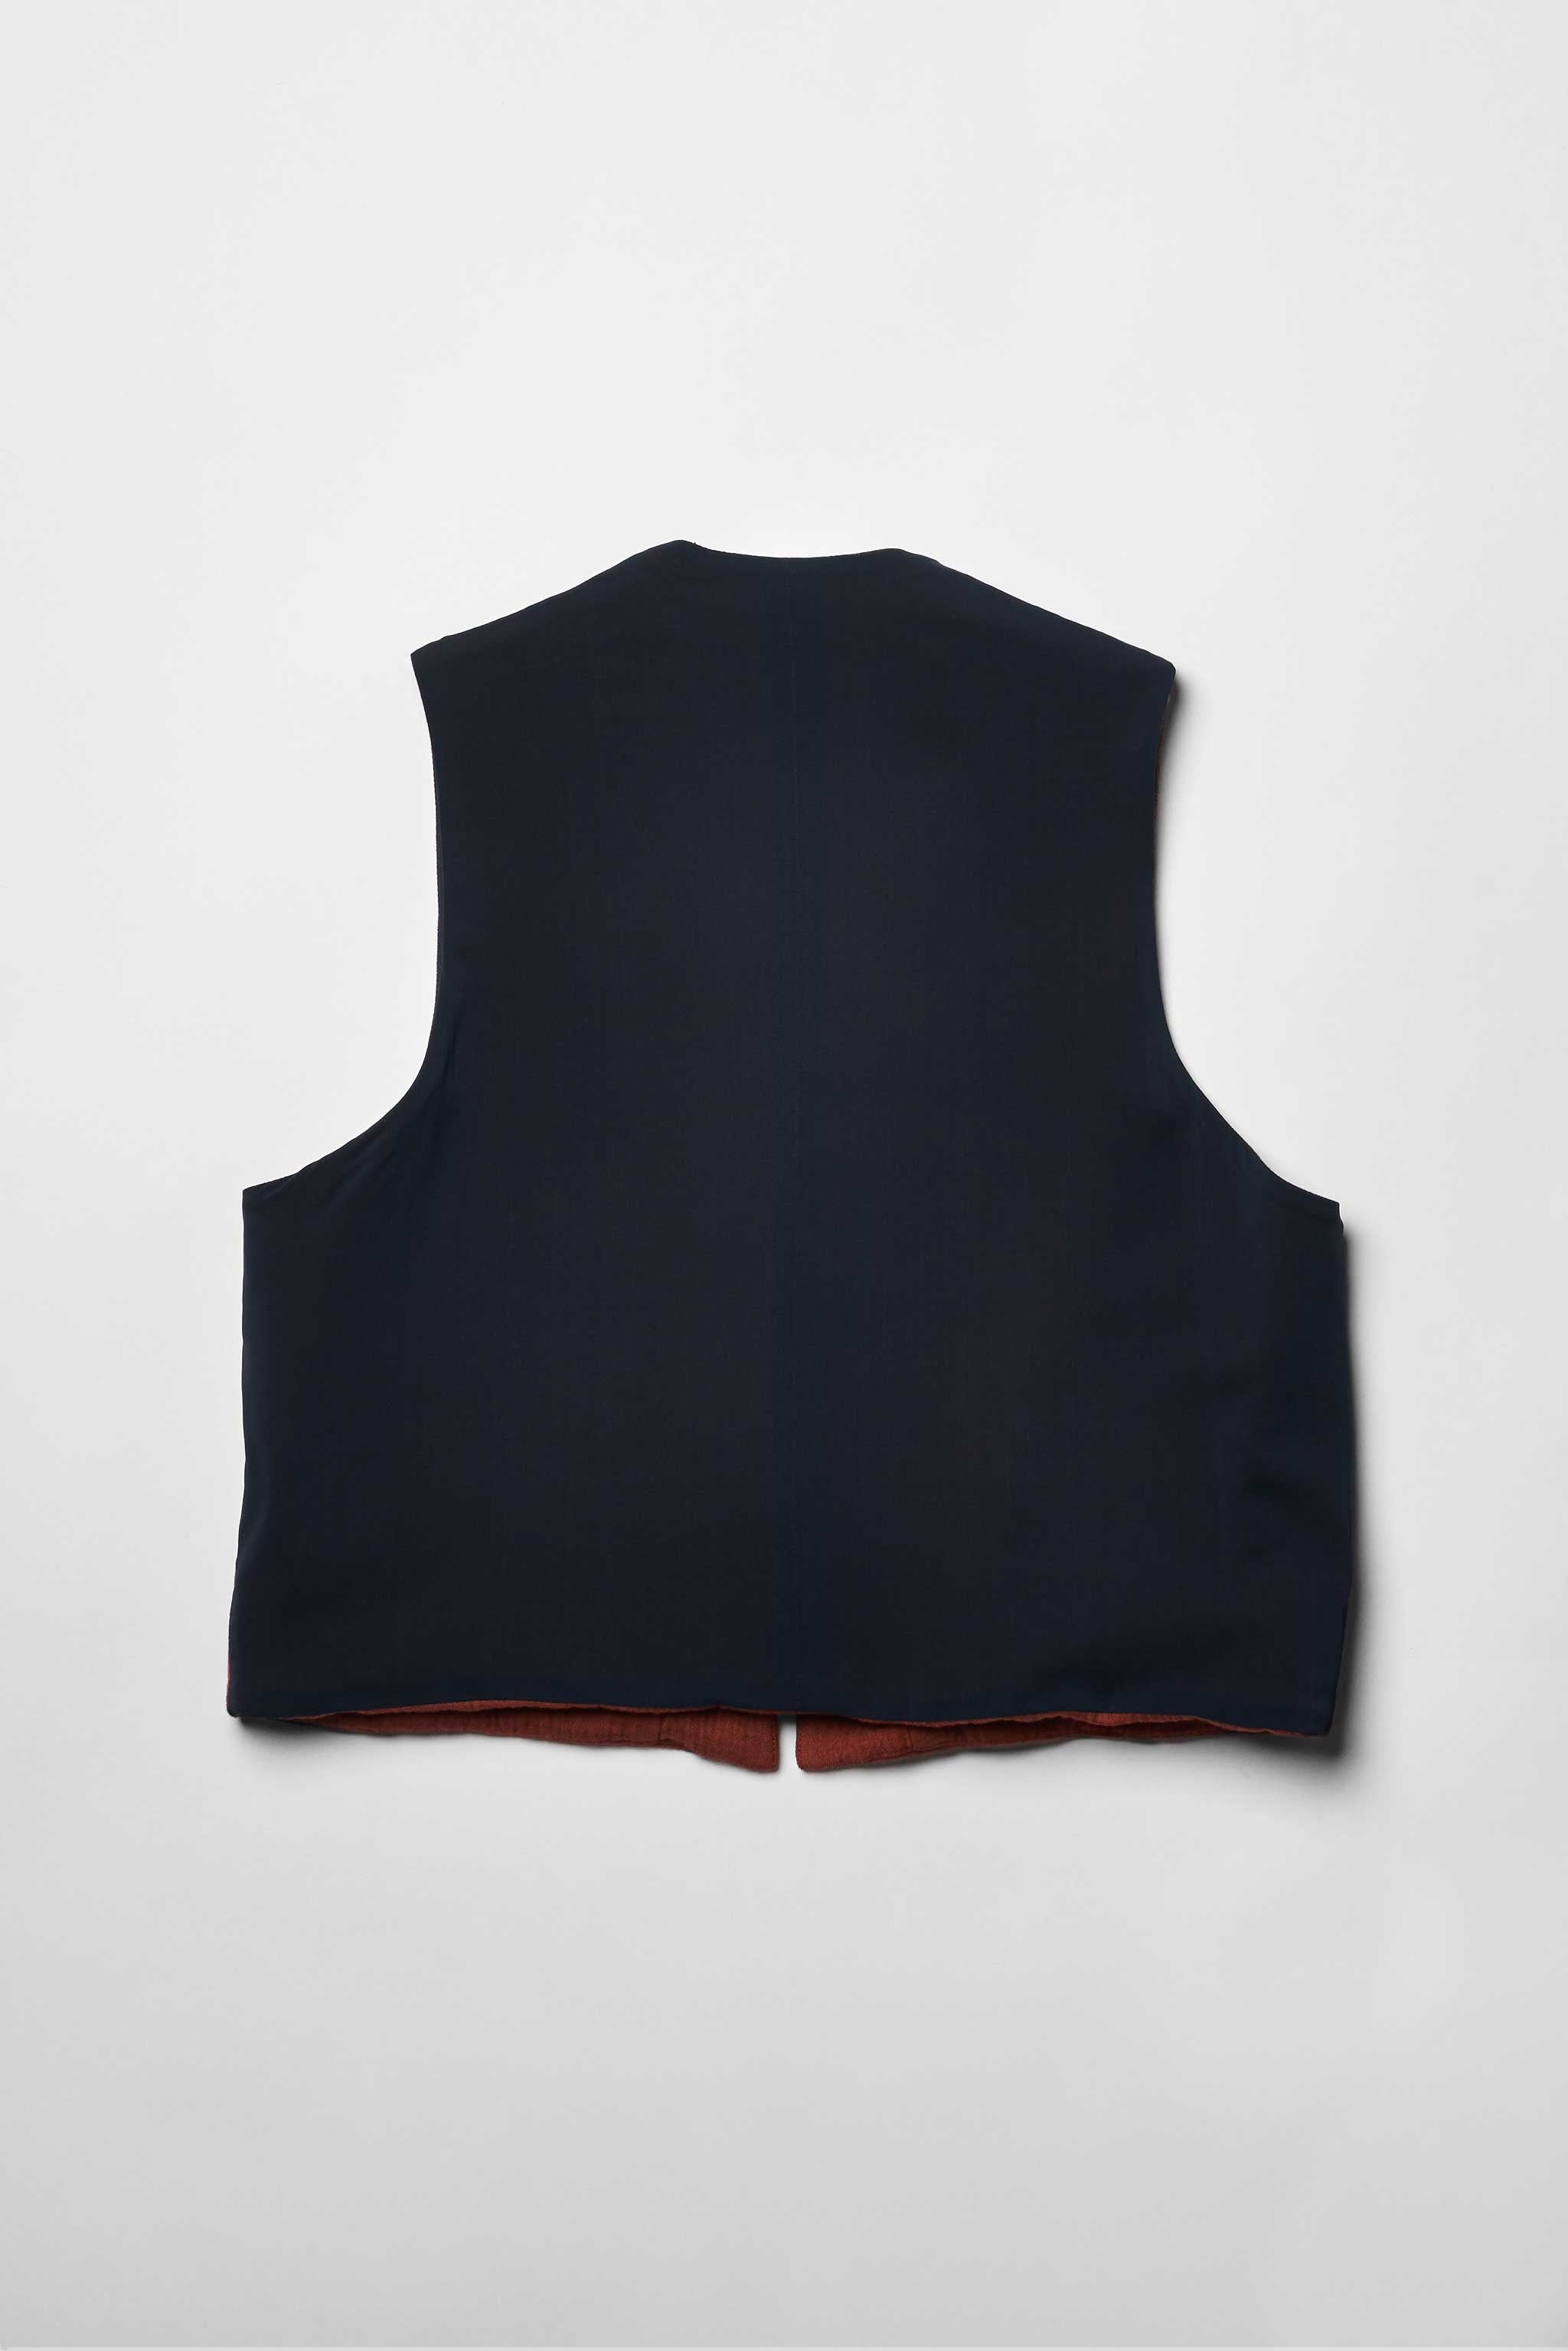 Goodfight All Access Vest Brown Reversible